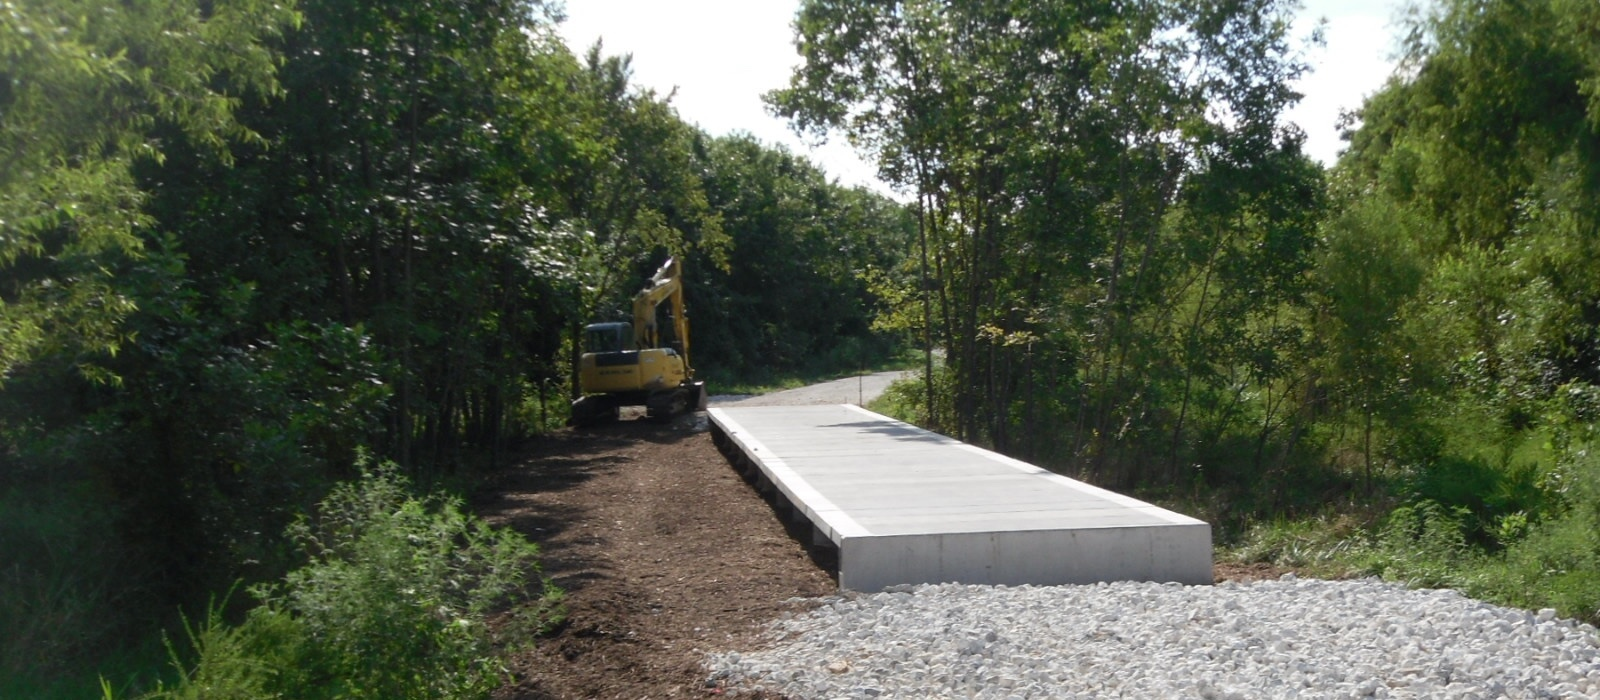 PermaTrak Wetland Boardwalks Installed at Clabber Creek Trail in Arkansas